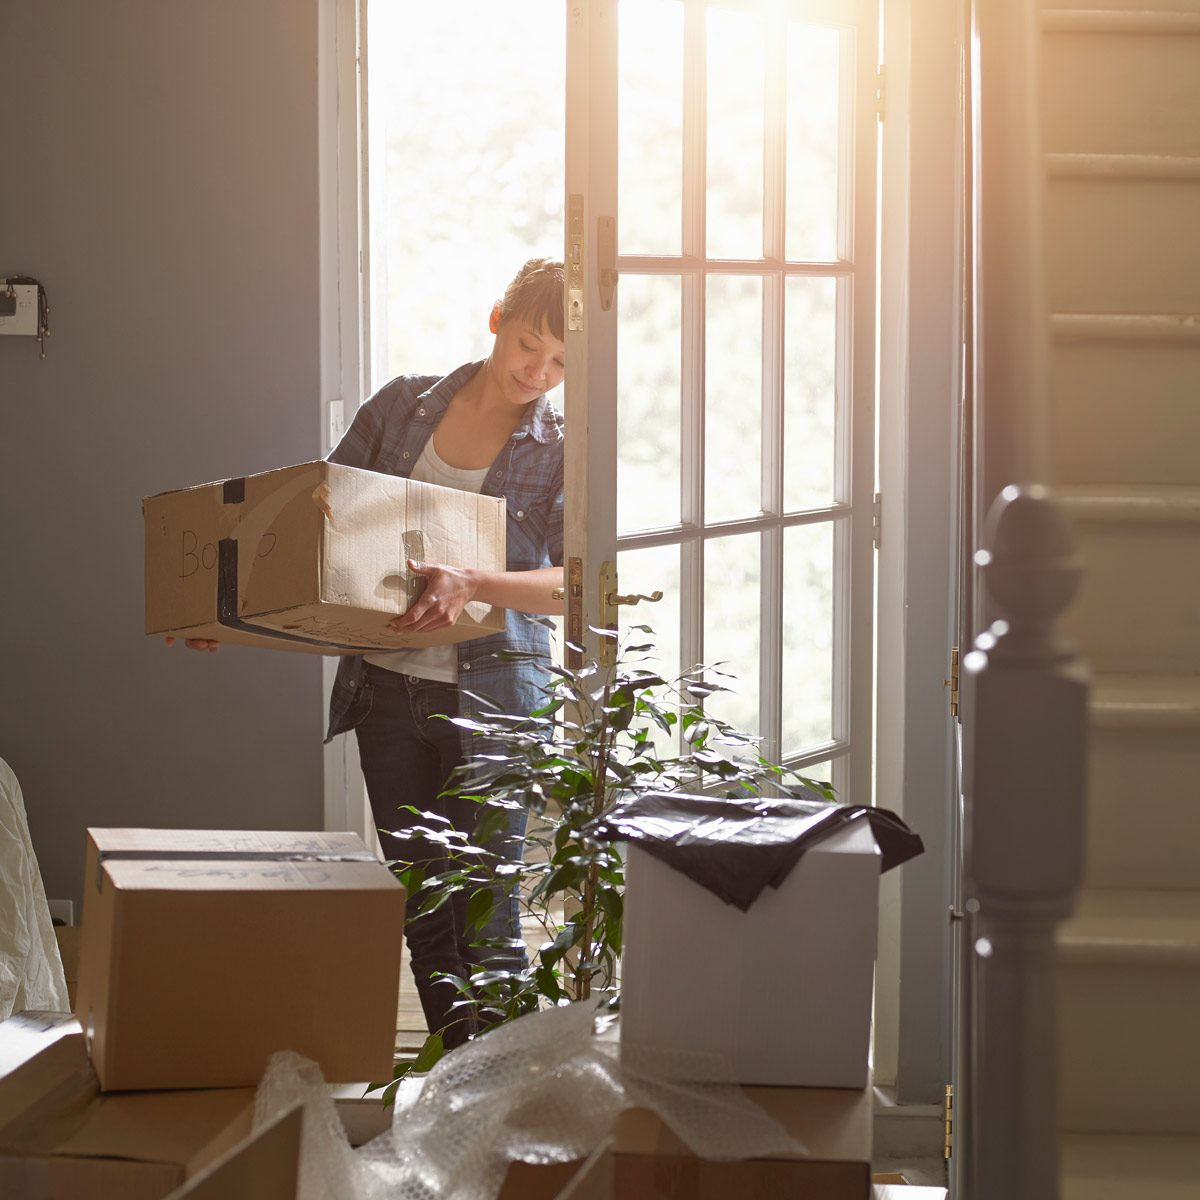 moving boxes And woman carrying a packing box into her new home Gettyimages 495164449